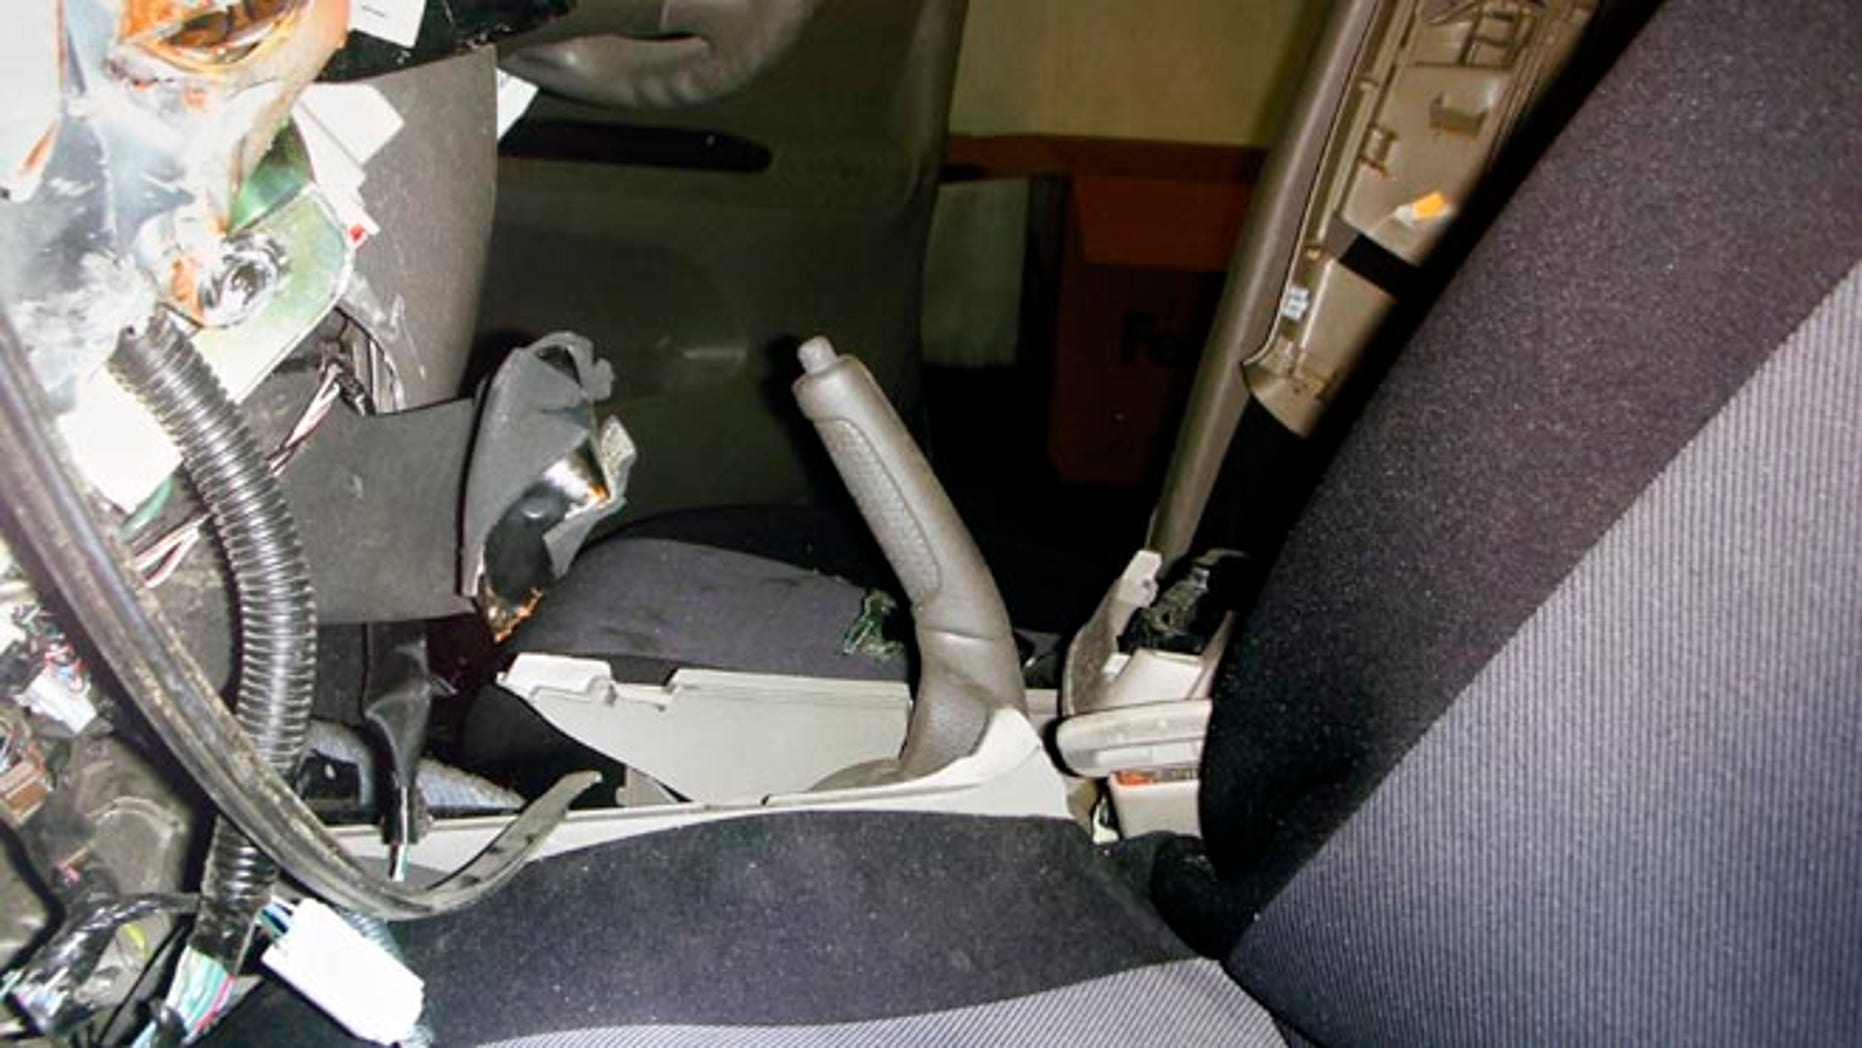 """FILE - In this undated file photo displayed during a news conference by the family of the Noriko Uno, who died in an alleged """"sudden unintended acceleration"""" auto crash in August 2009, a photo of the interior of her Toyota 2006 Camry is shown with the hand brake handle pulled all the way back. Uno's case, in which her family claims her vehicle accelerated suddenly despite her efforts, is the first headed to trial where the Japanese automaker is accused of covering up defects that led to her death. (AP Photo/Uno Family, File)"""